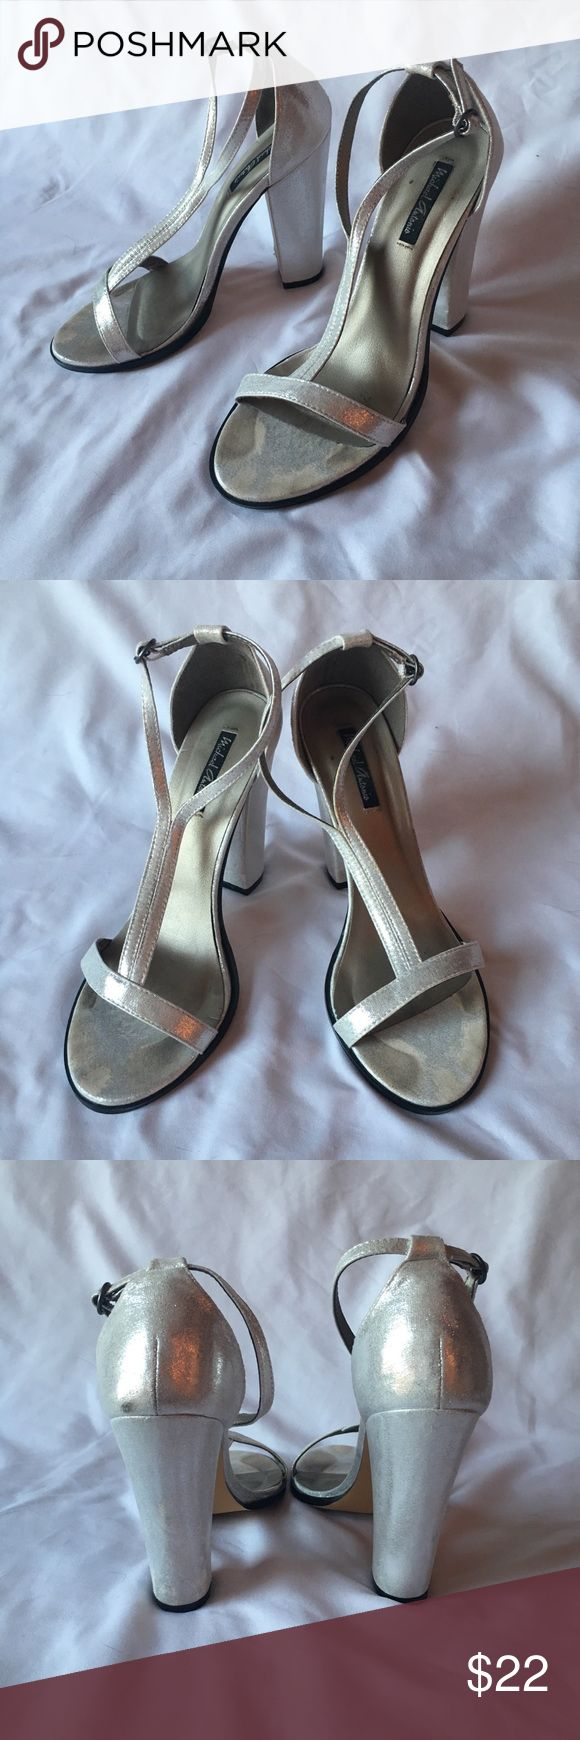 Michael Antonio Silver Strappy High-Heel Sandals Silver strappy high-heel sandals, size 8.5. 4.5-inch block heel, ankle strap.  Worn only once as a bridesmaid for a wedding. One small scuff on the back side of the right shoe  and a small tear in the material on the underside of the left heel (see third and fifth photos, respectively). Michael Antonio Shoes Heels